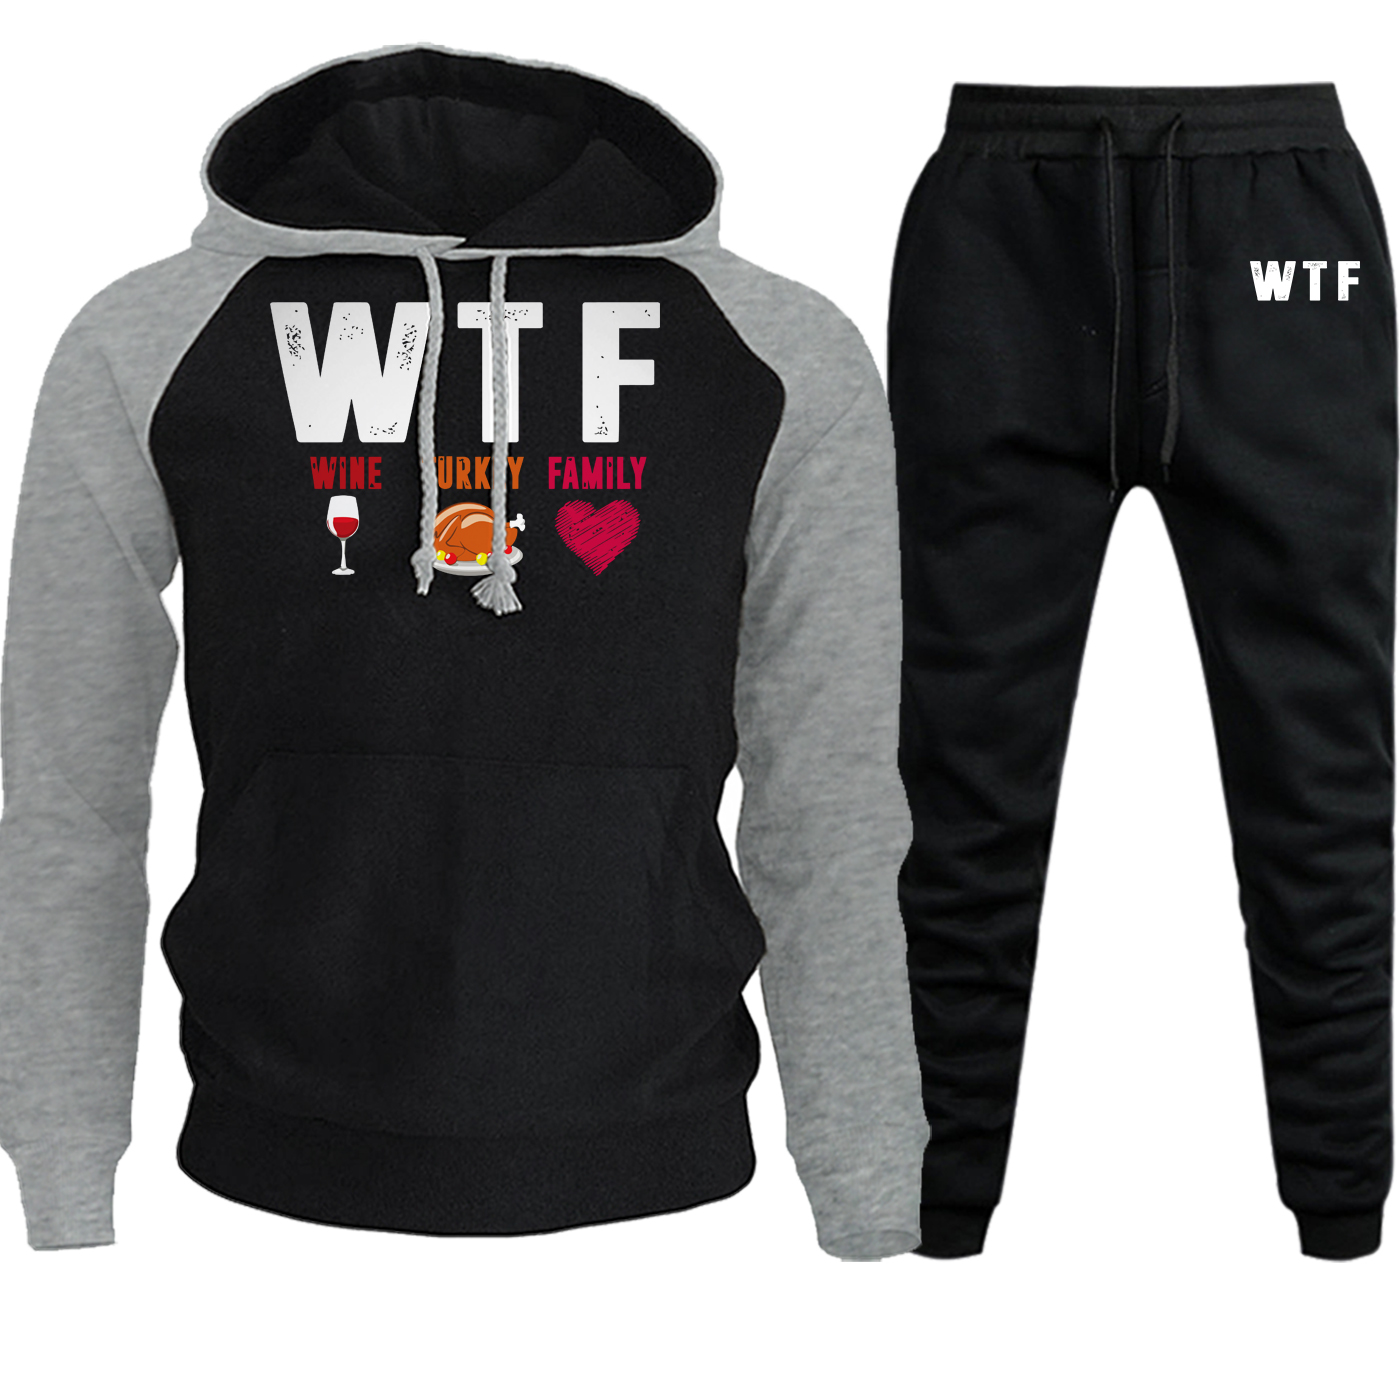 WTF Wine Turkey Family Streetwear Men Raglan Hoodie Suit Autumn Winter New Casual Hoodies Fleece Suit Pullover+Pants 2 Piece Set